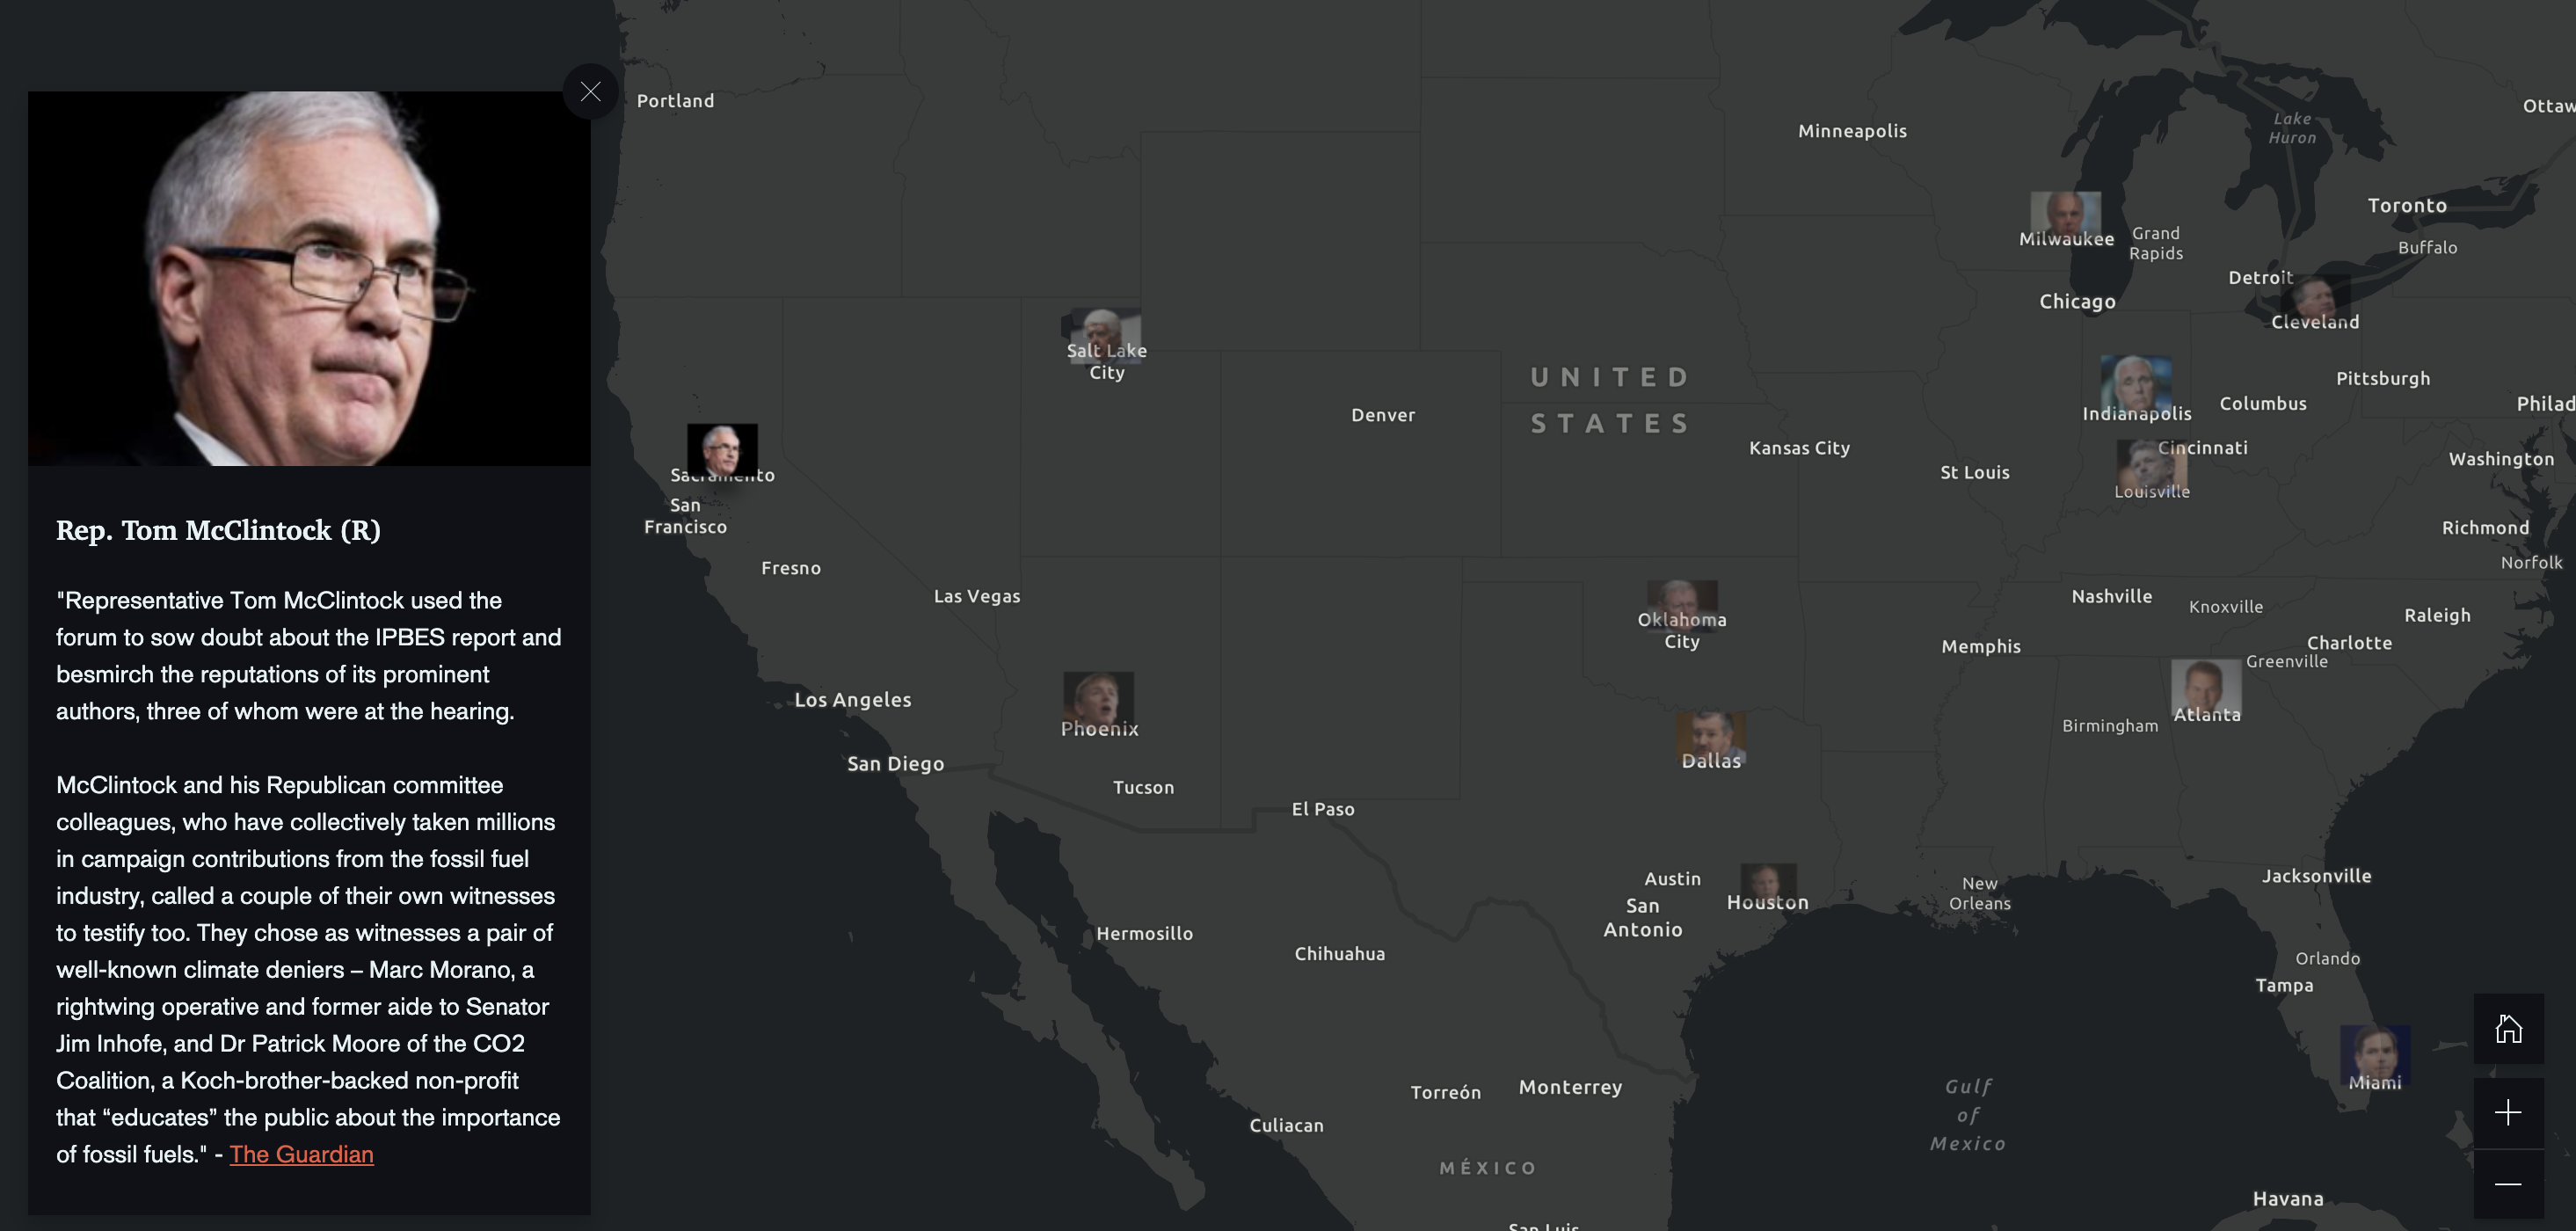 The StoryMaps shows the elected official for every congressional district and state. Some of the more extreme climate deniers like Rob Bishop (Utah), Paul Gosar (Arizona) and Tom McClintock (CA) and their public statements are highlighted.